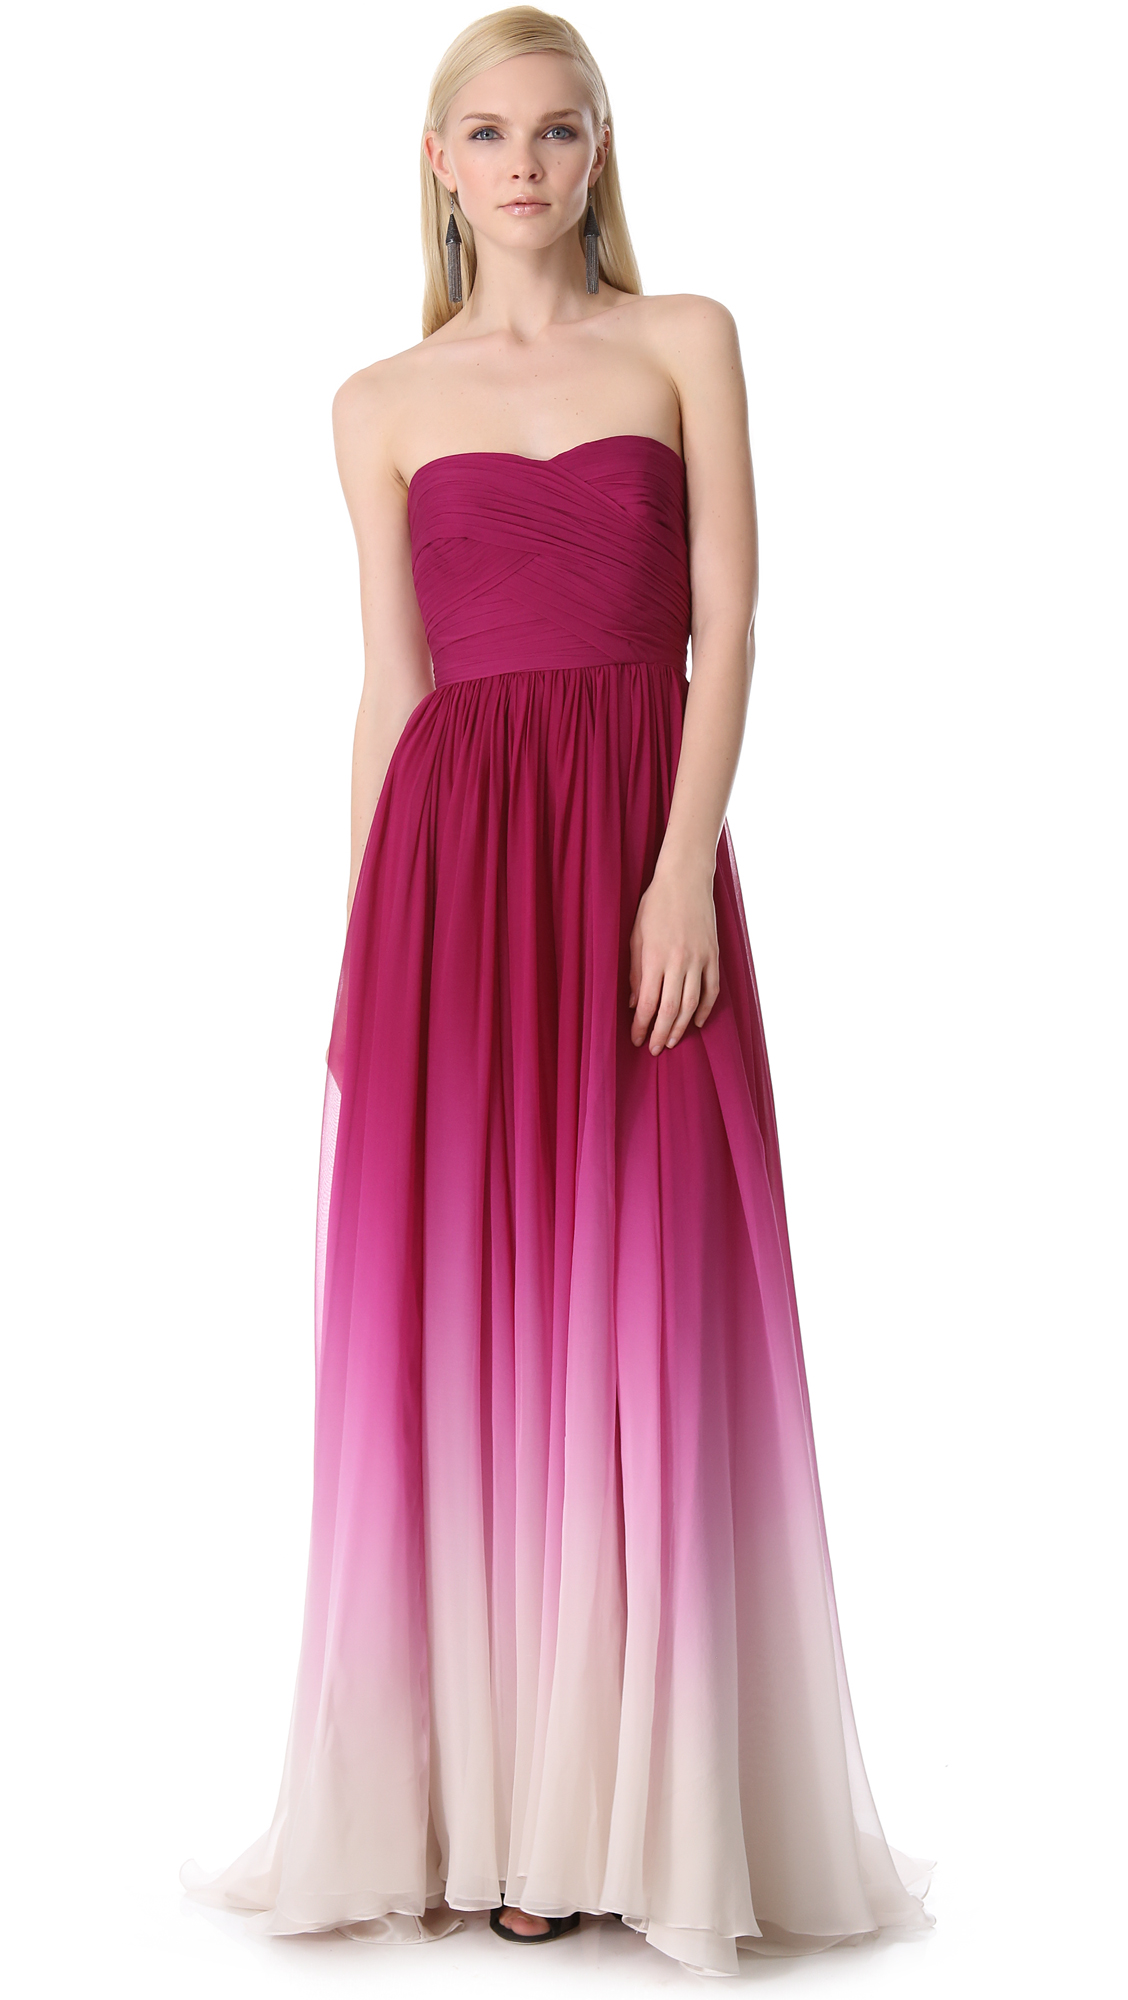 Lyst monique lhuillier strapless sweetheart gown in pink for Monique lhuillier pink wedding dress